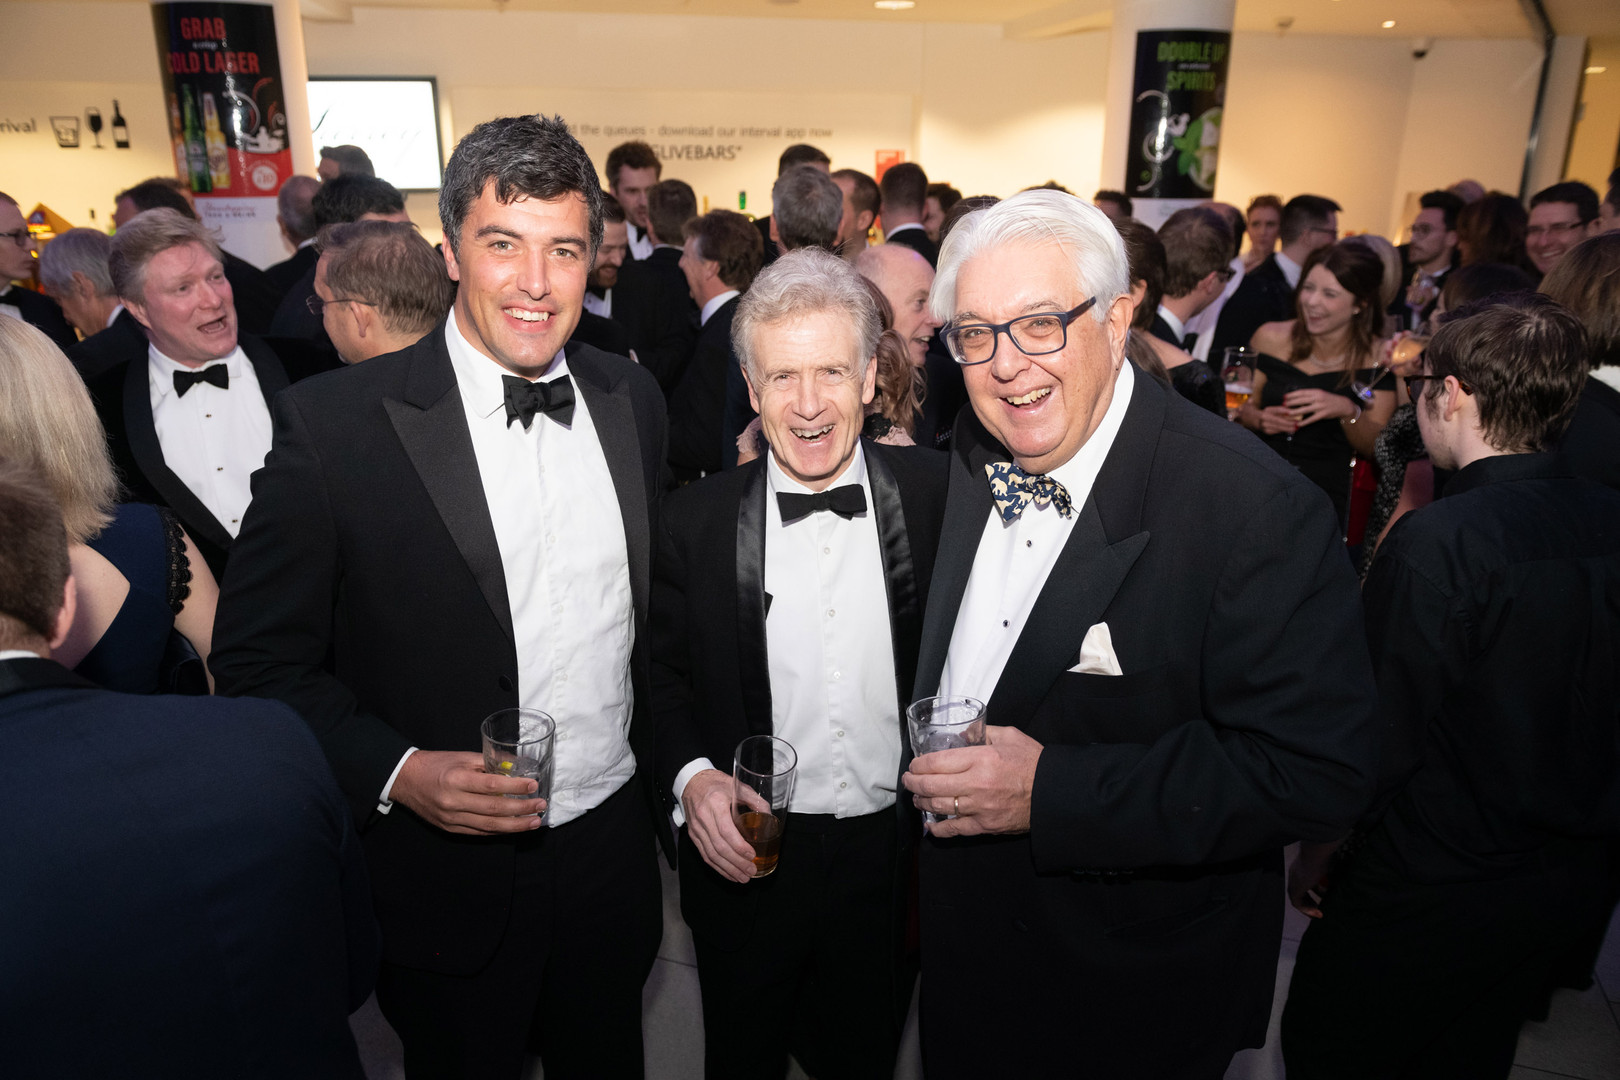 SurreyPropertyAwards_Nov2019_173.jpg